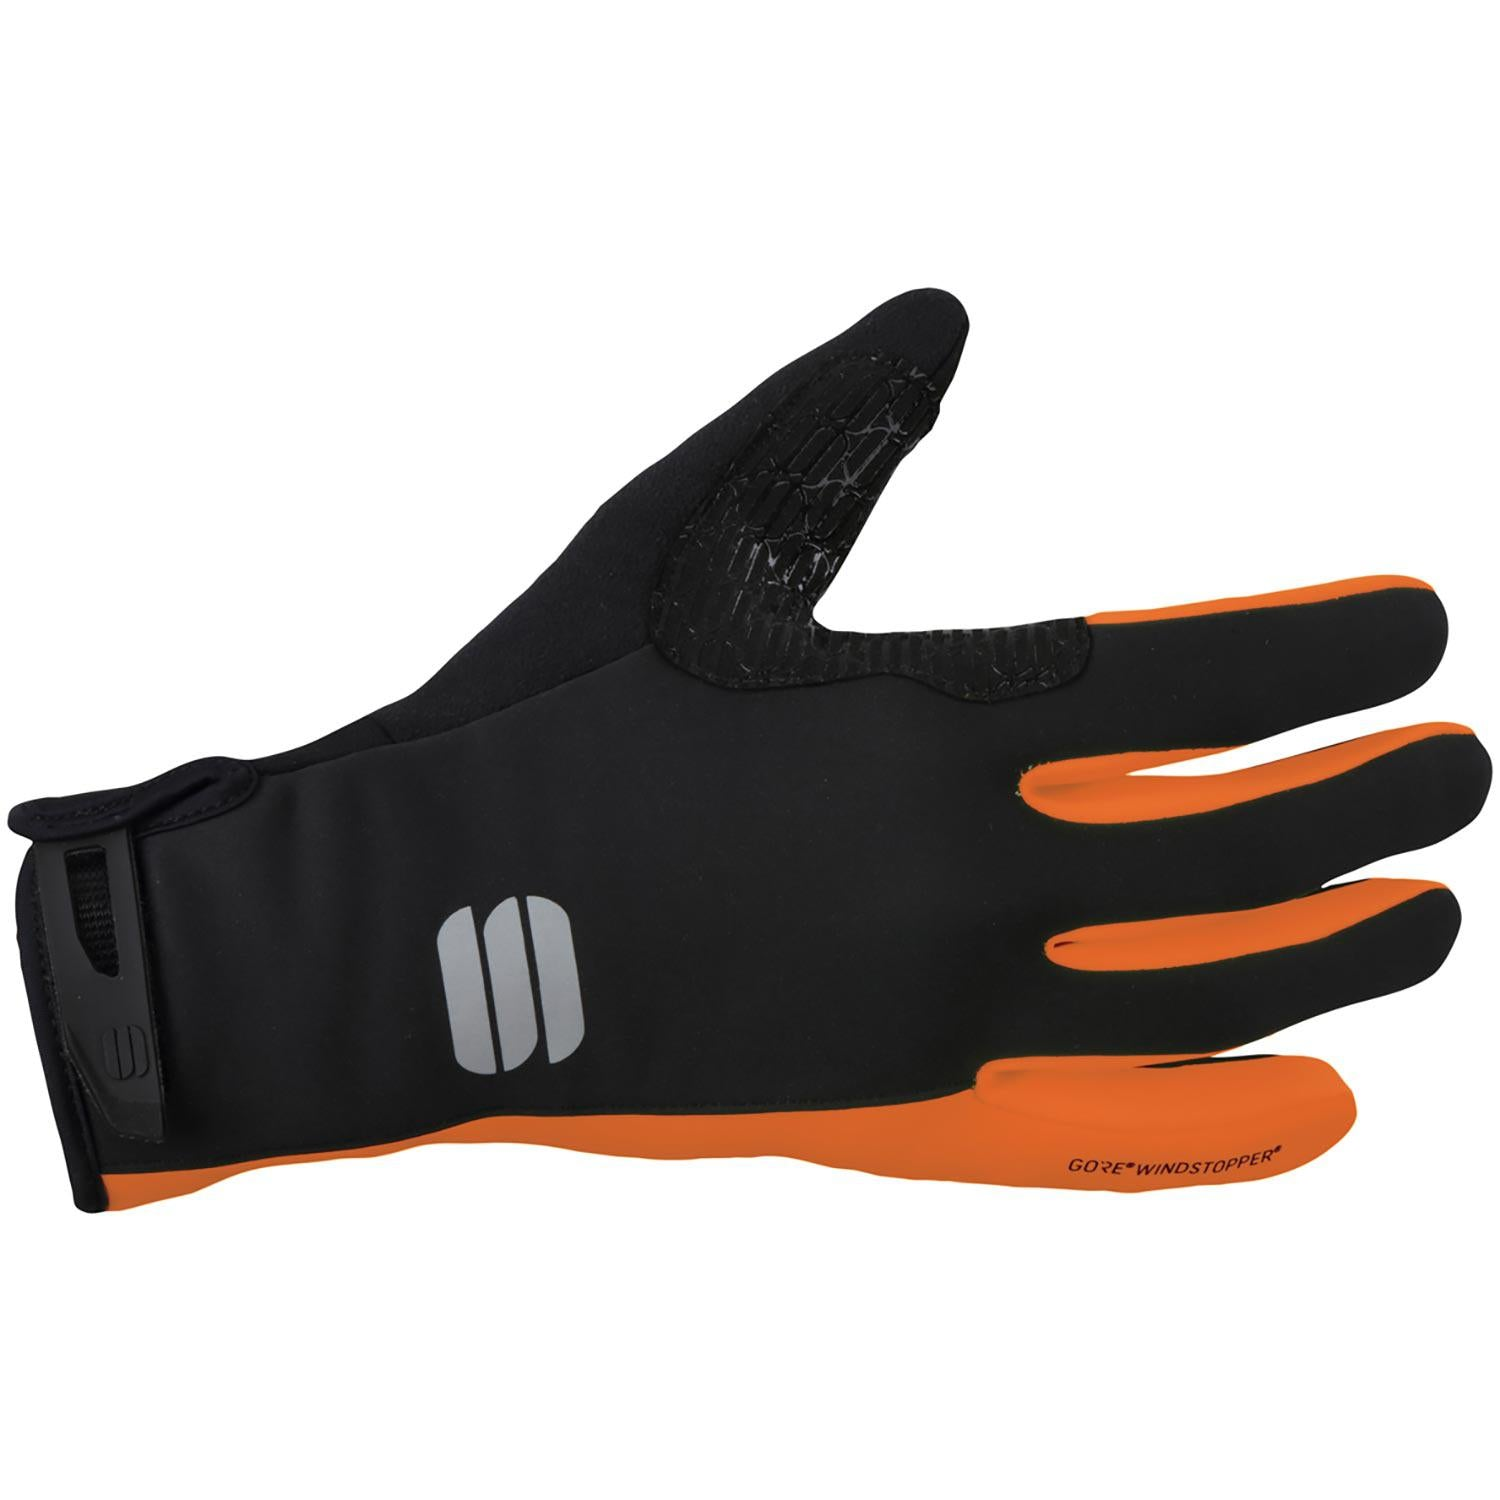 Sportful-Sportful WS Essential 2 Gloves-Black/Orange SDR-XS-SF019688501-saddleback-elite-performance-cycling